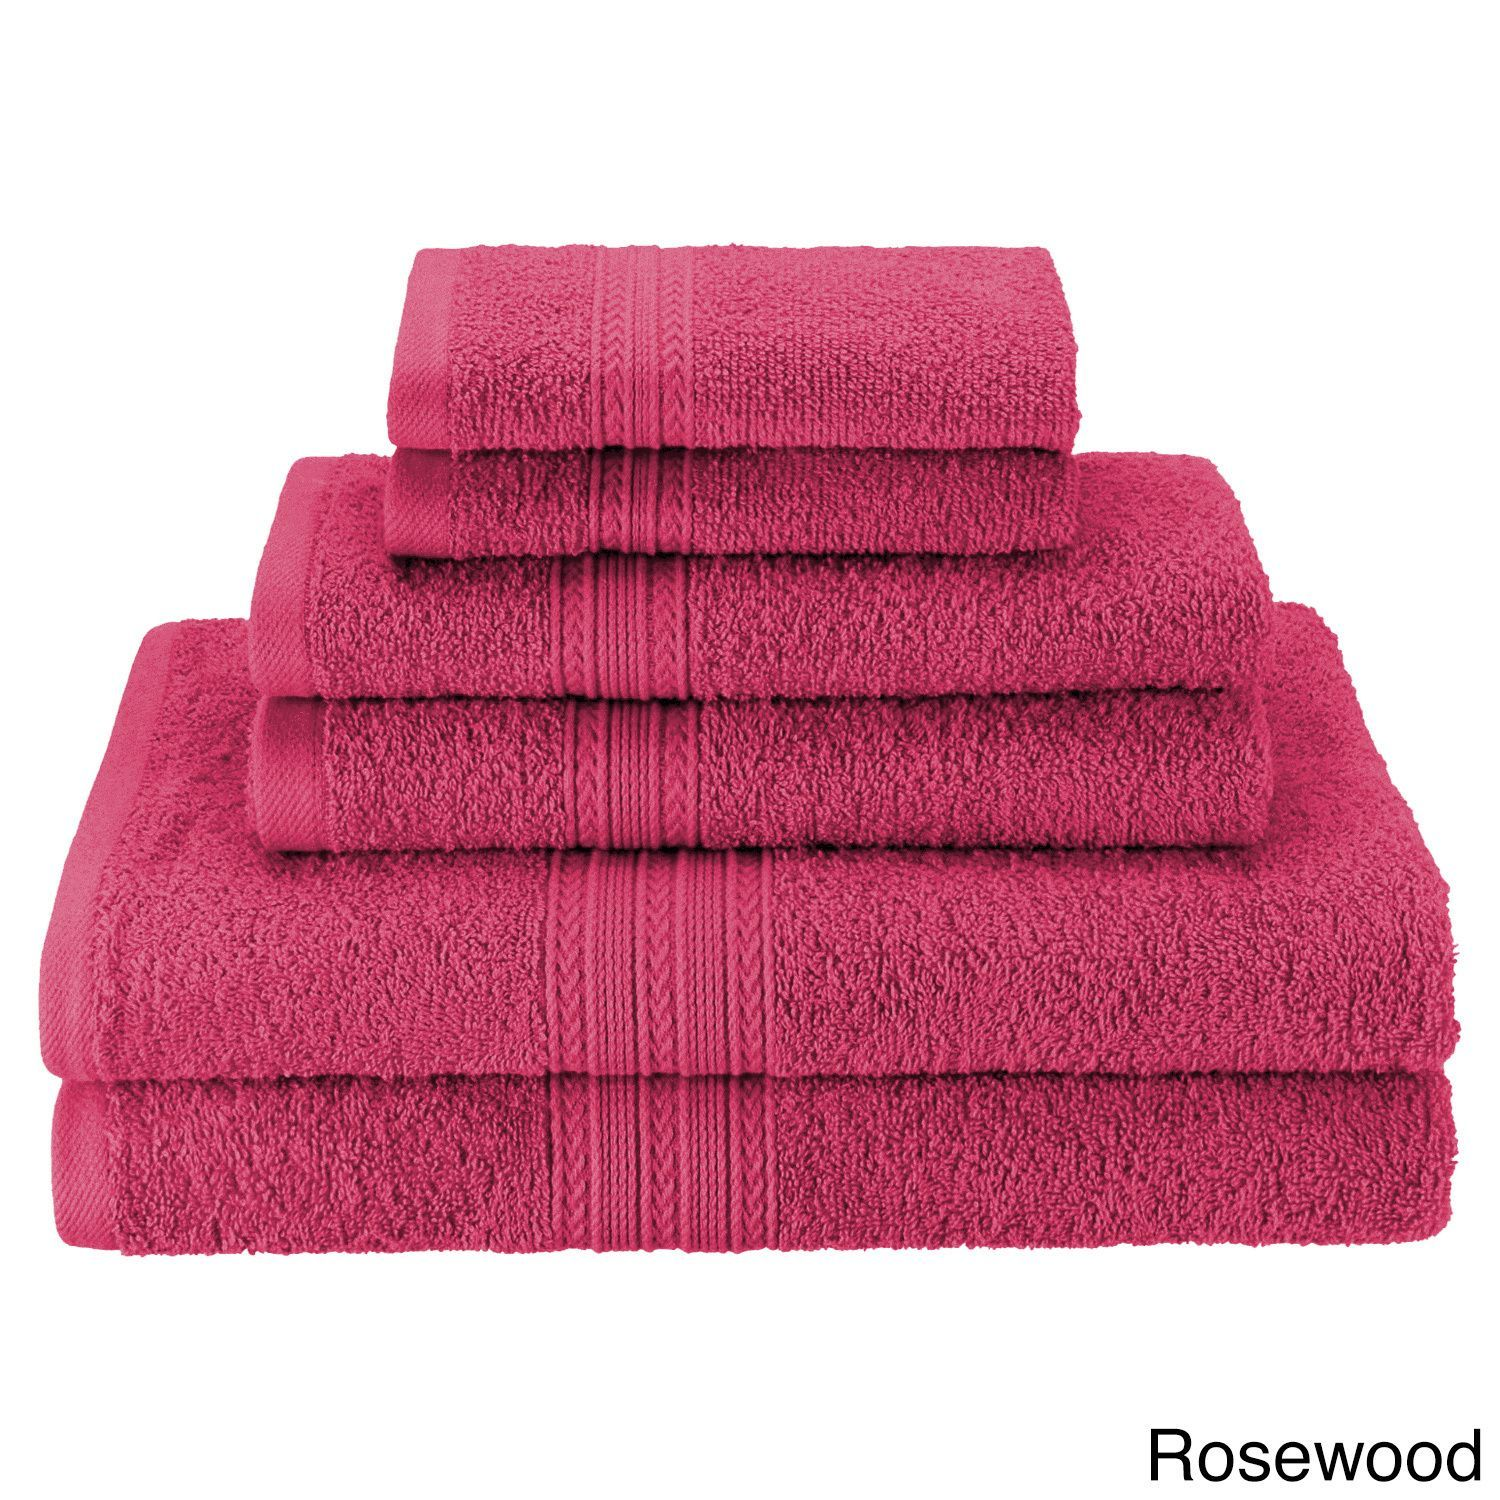 City Superior Eco Friendly Soft and Absorbent 6-Piece Towel Set